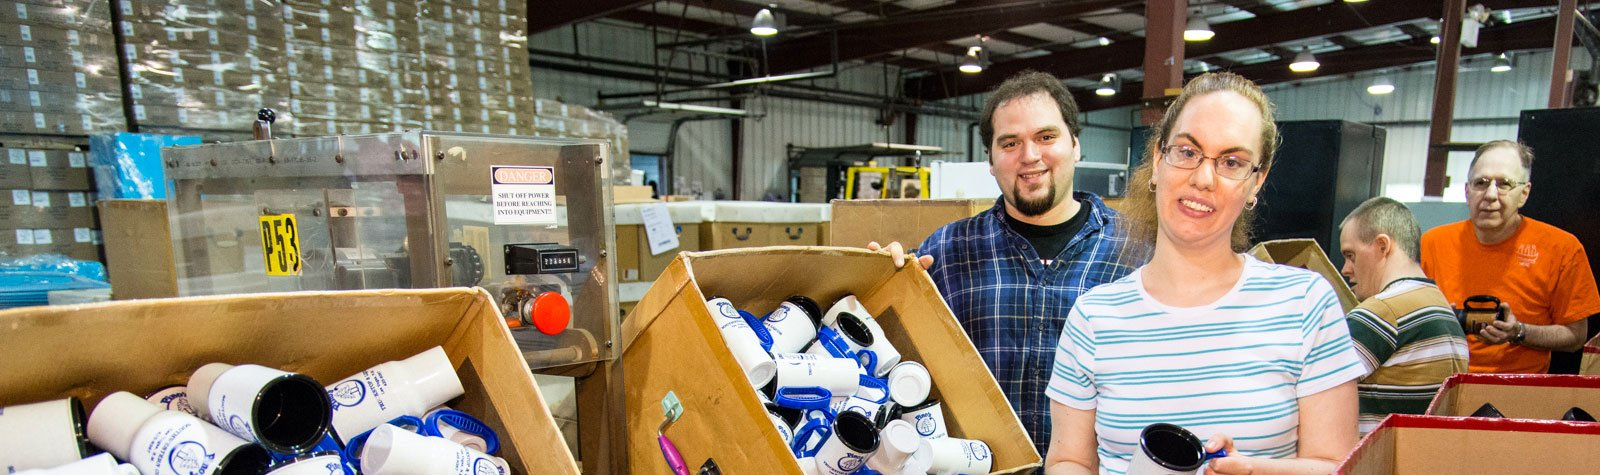 erie, PA jobs - craigslist. CL. OT available (Erie) map hide this posting restore restore this posting. favorite this post Oct 3 Roofers Commercial (Erie, Pa) map hide this posting restore restore this posting. favorite this post Oct 3 Cleaner (erie) map hide this posting restore restore this posting.